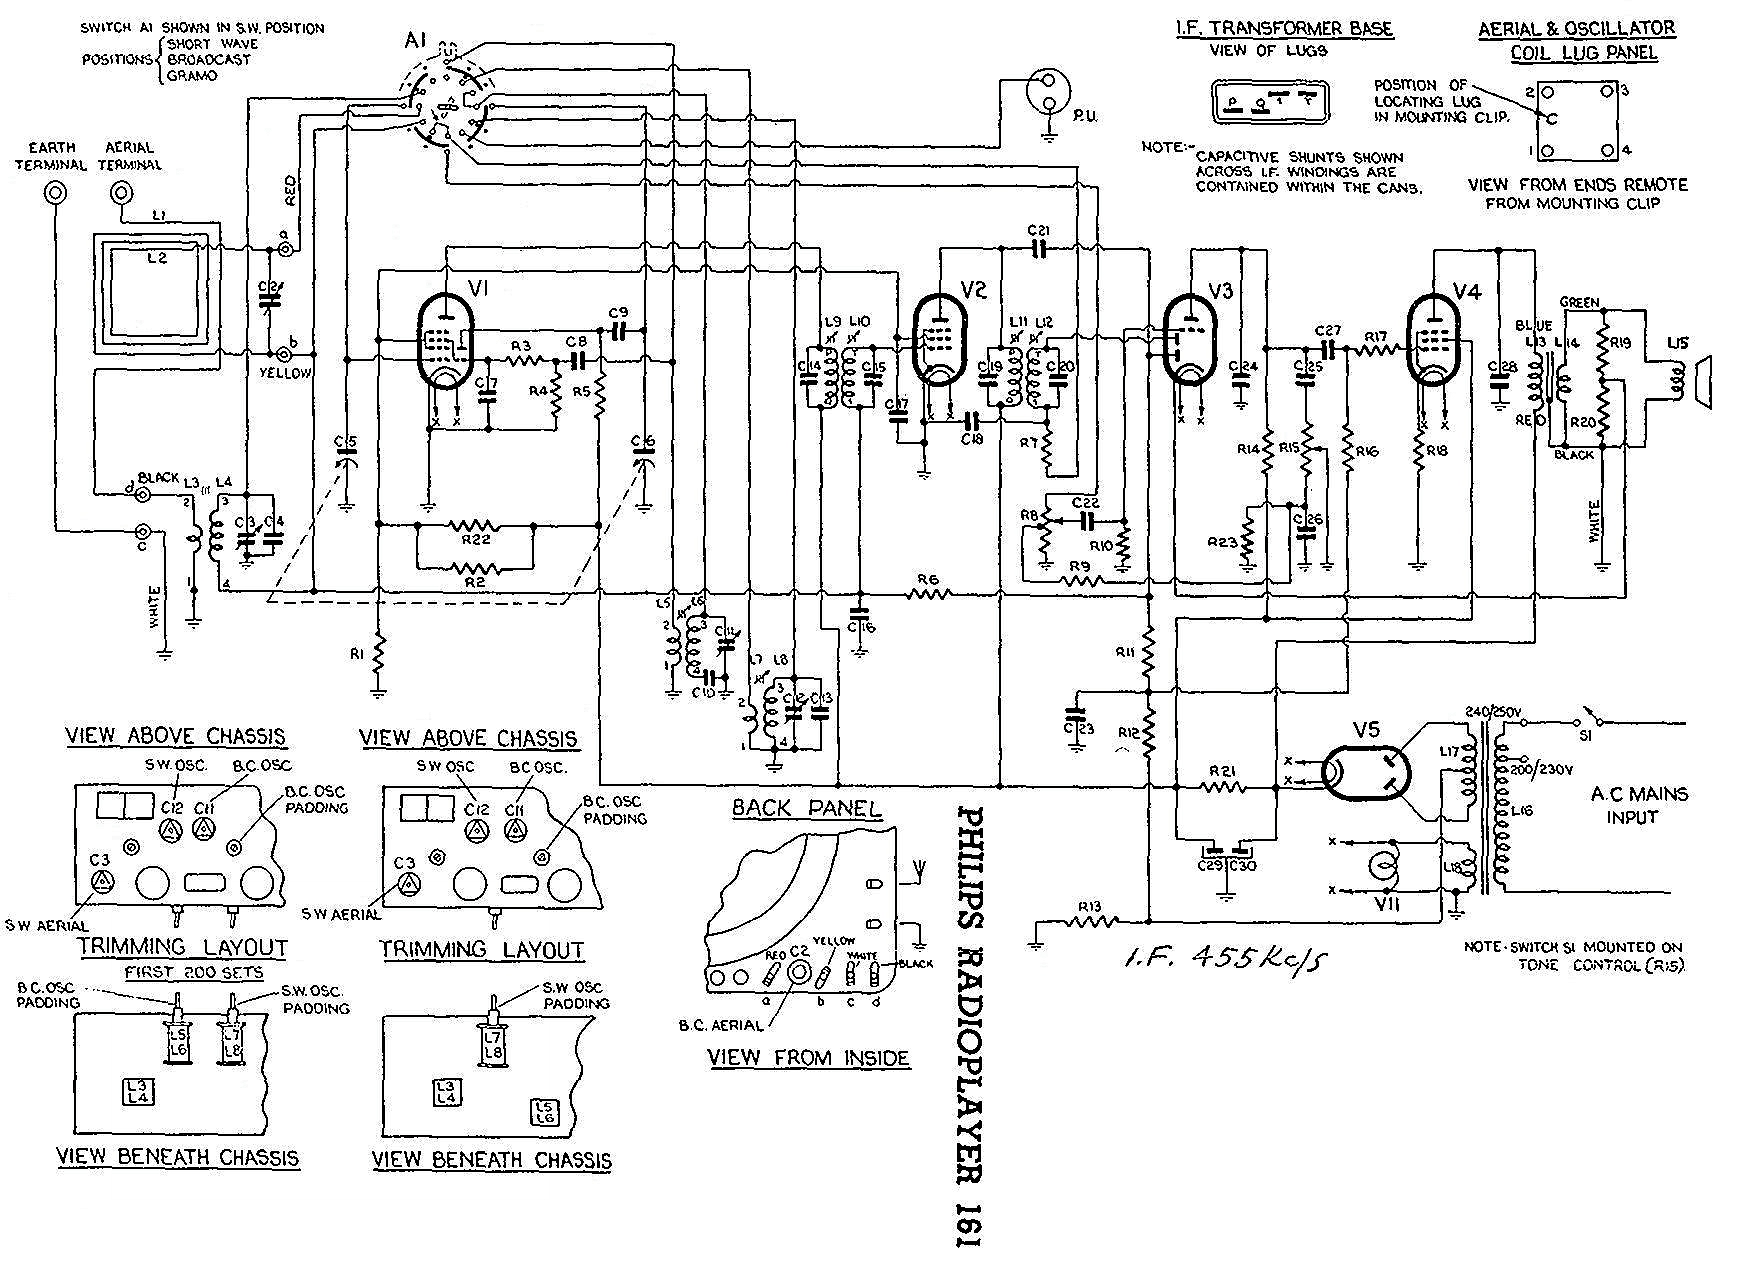 ford 302 engine history ford circuit diagrams amazing 2017 top ford 302 engine history ford circuit diagrams tube phono pre schematic further geiger counter circuit schematic